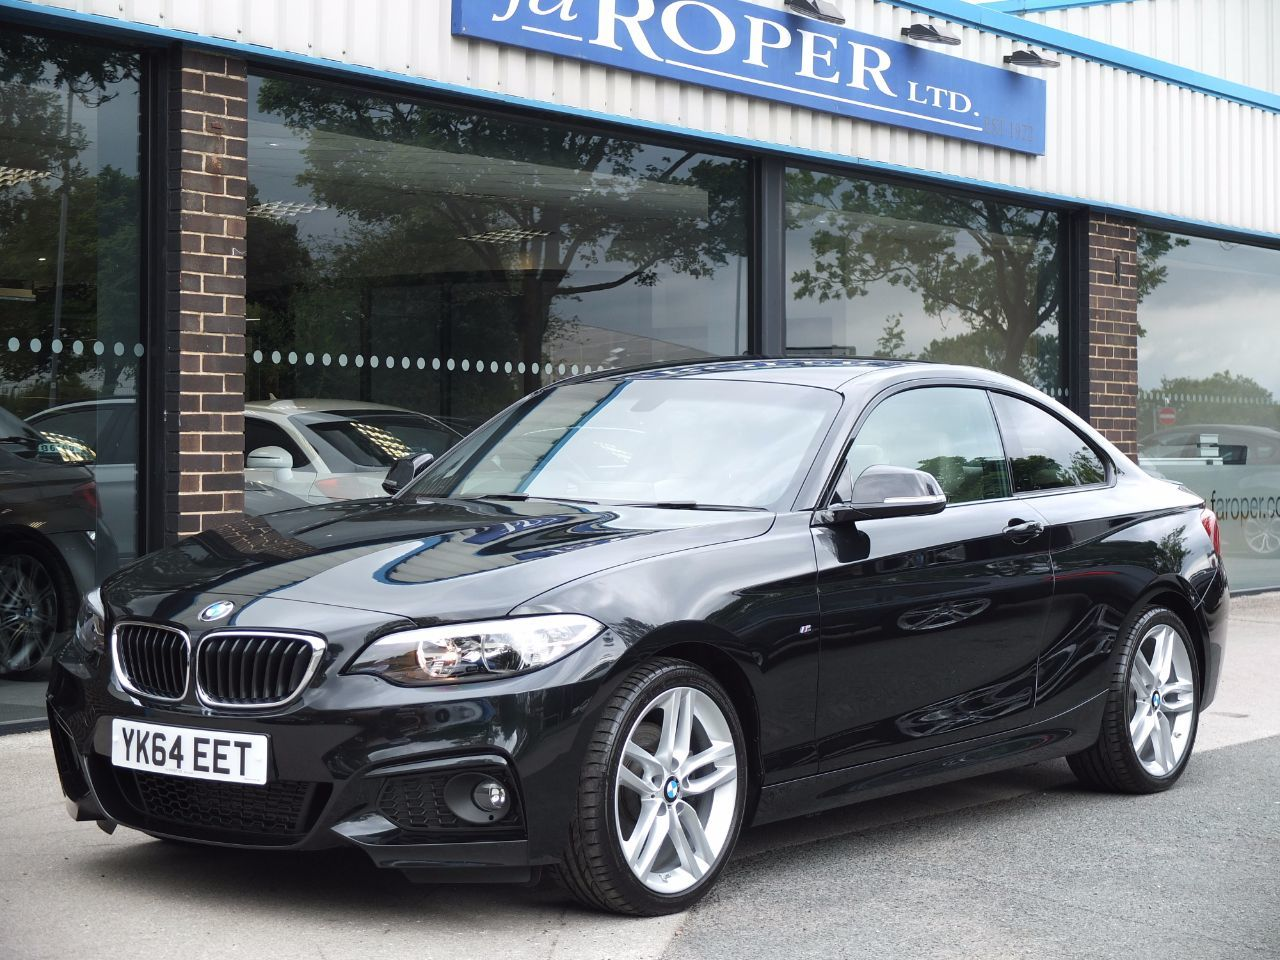 BMW 2 Series 2.0 220d M Sport Coupe Auto, Pro Media, Leather++ Coupe Diesel Black Sapphire MetallicBMW 2 Series 2.0 220d M Sport Coupe Auto, Pro Media, Leather++ Coupe Diesel Black Sapphire Metallic at fa Roper Ltd Bradford